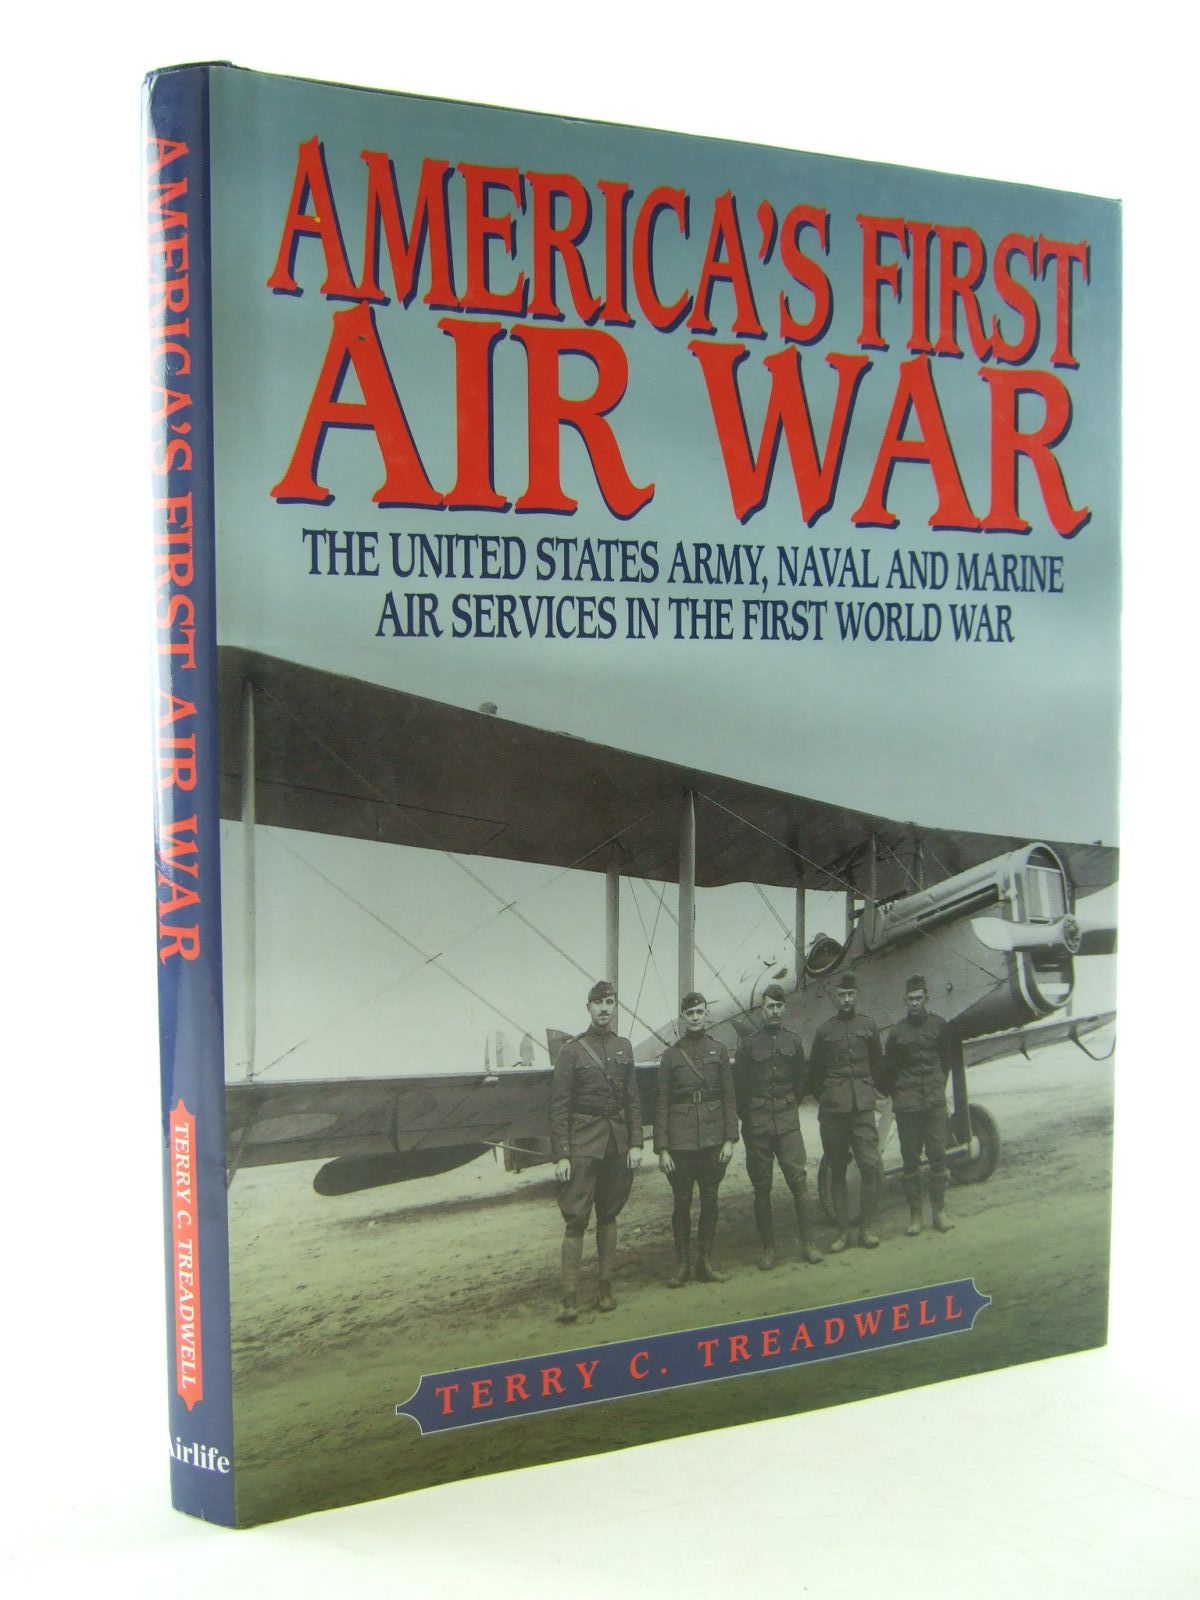 Photo of AMERICA'S FIRST AIR WAR written by Treadwell, Terry C. published by Airlife (STOCK CODE: 2109060)  for sale by Stella & Rose's Books